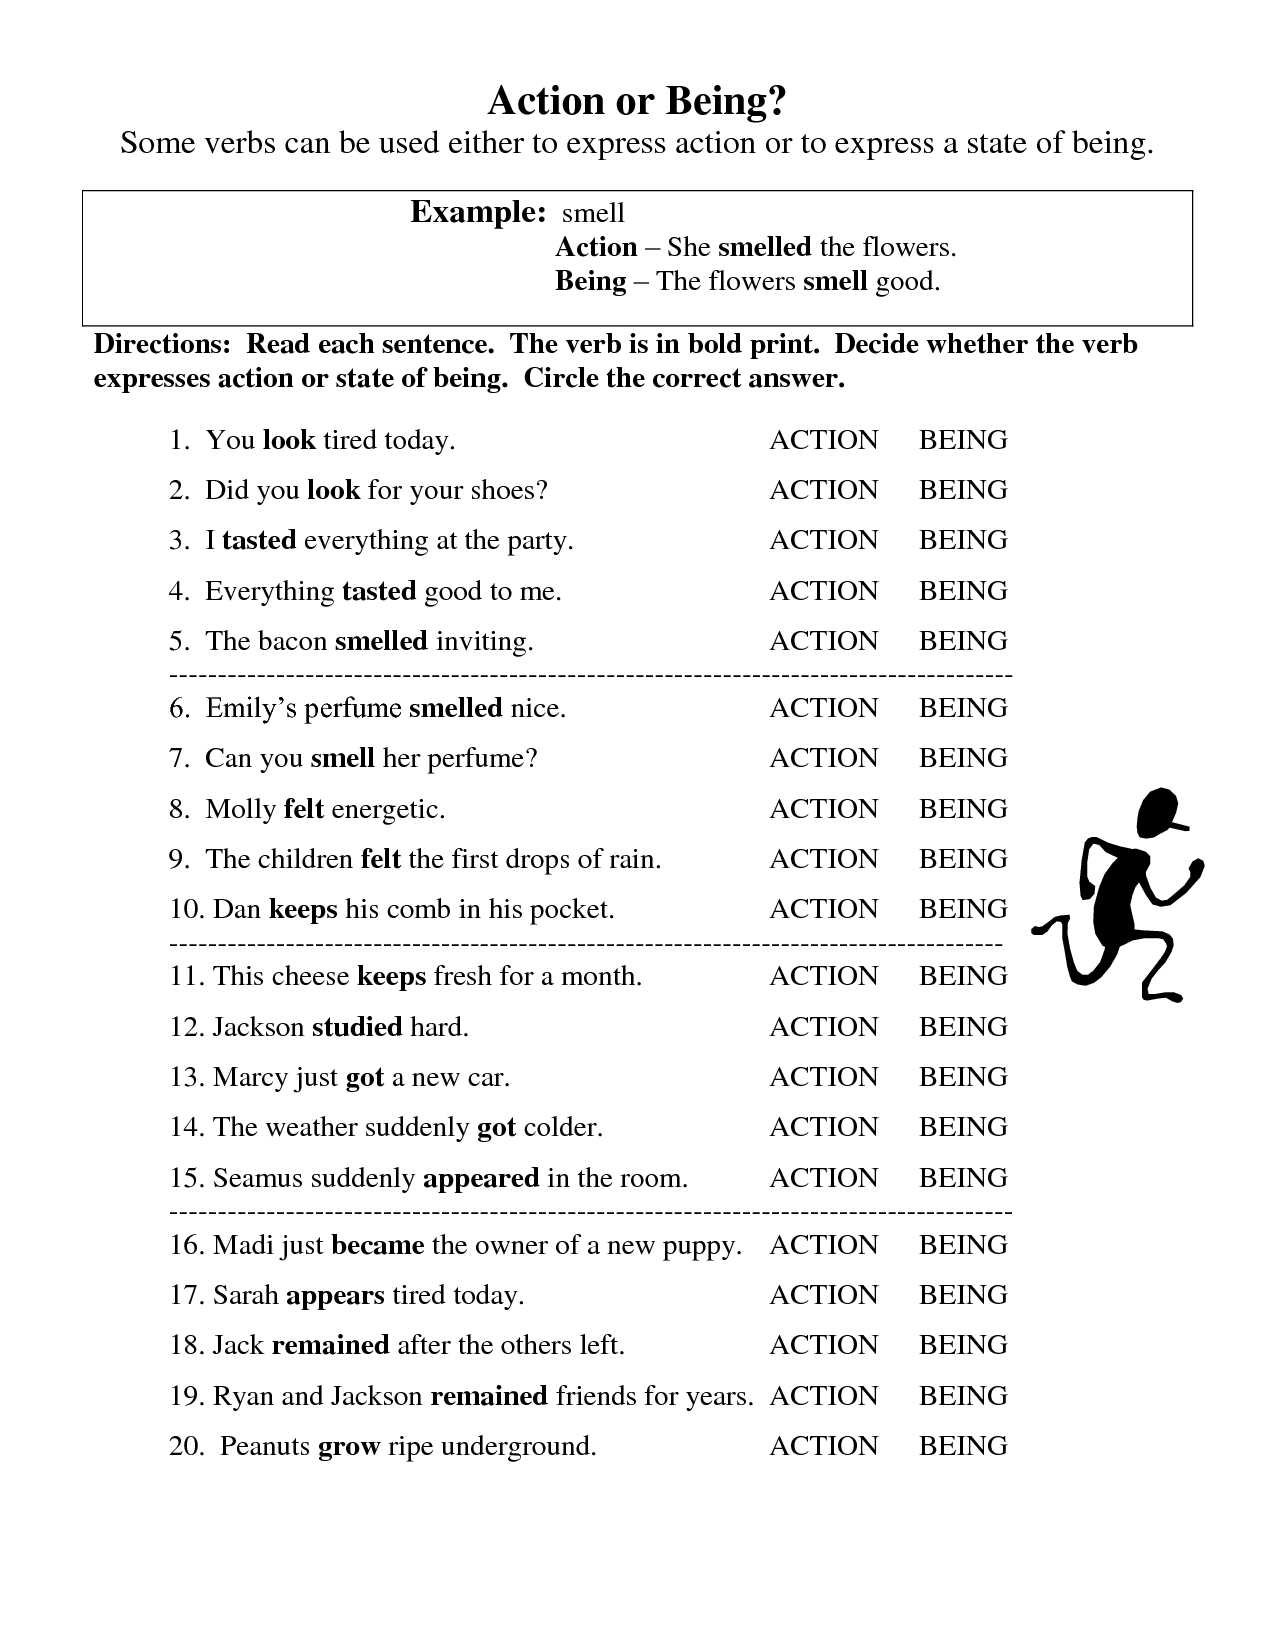 Subject verb agreement worksheets sample free download - Subject Verb Agreement For Grade 2 Seventh Grade Grade 7 Subject Verb Agreement Questions 17 Best